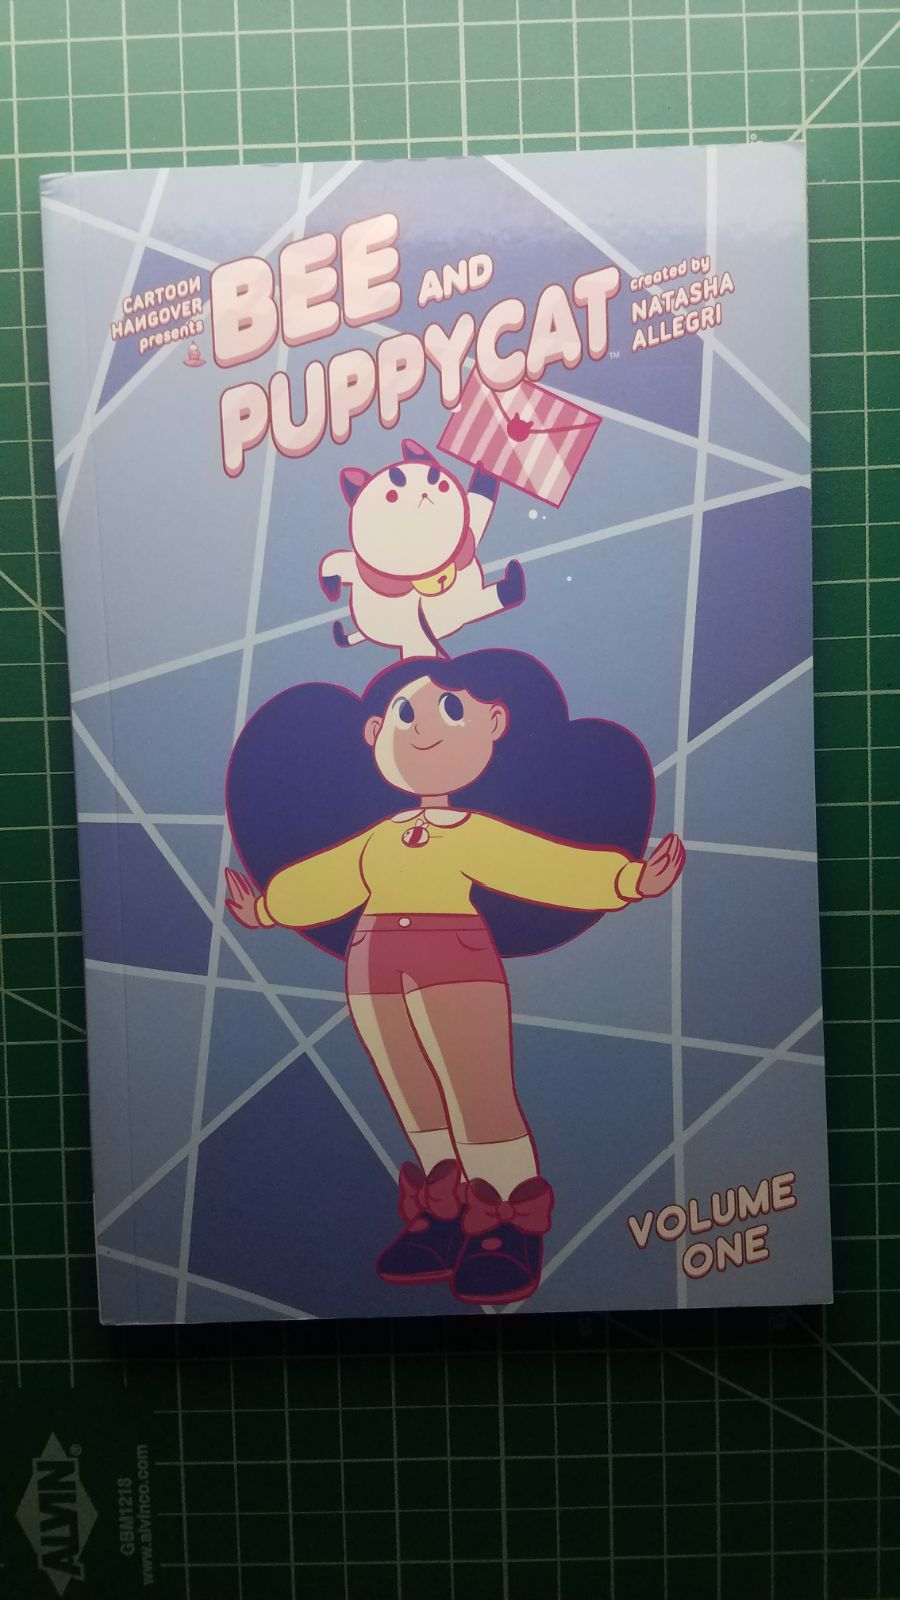 Bee and Puppycat Vol. One